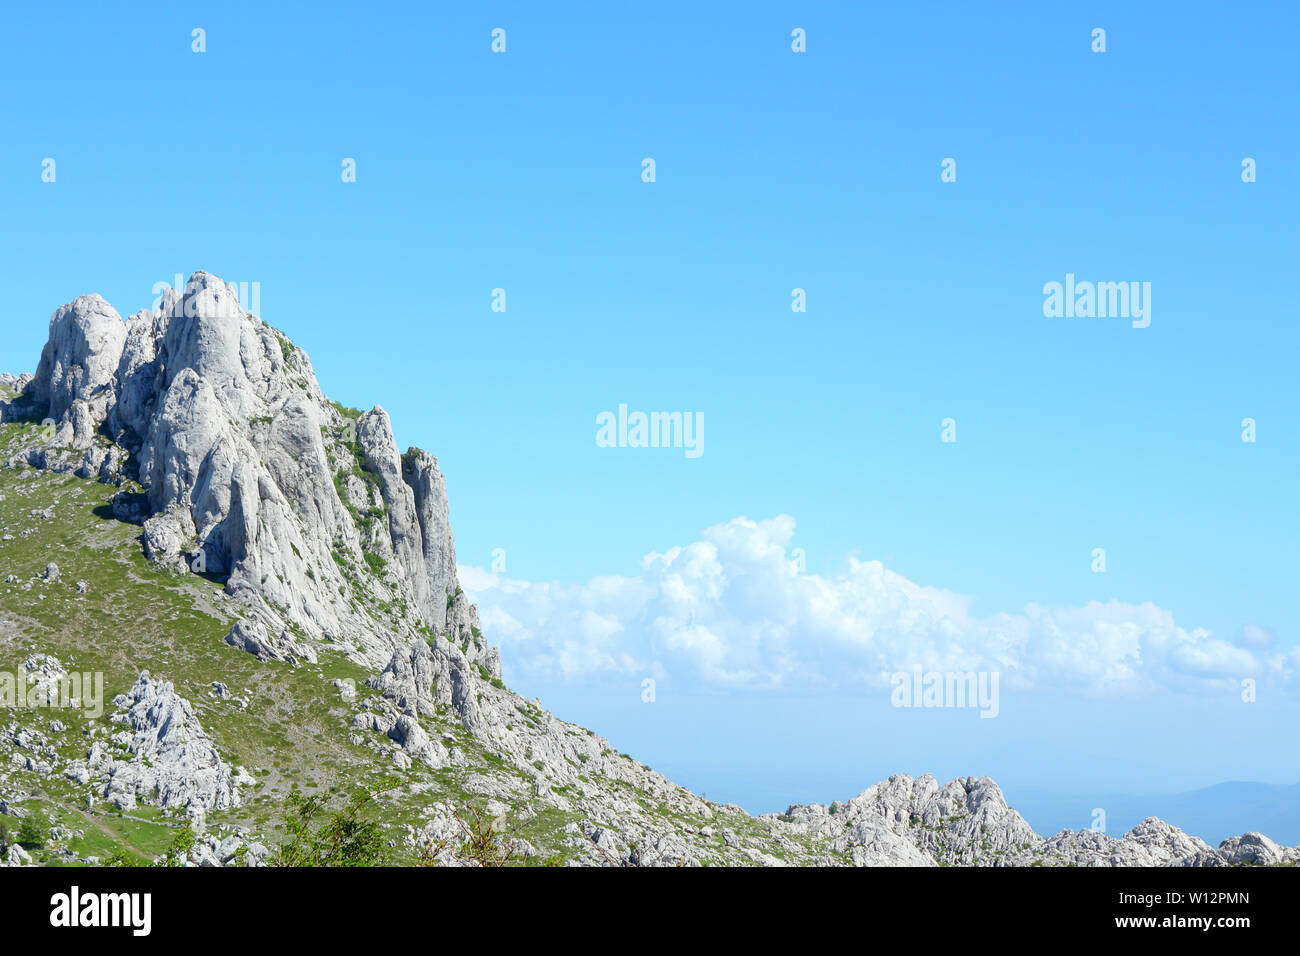 National park in Croatia, part of a mountins. This specific mountin is called Tulove grede Stock Photo